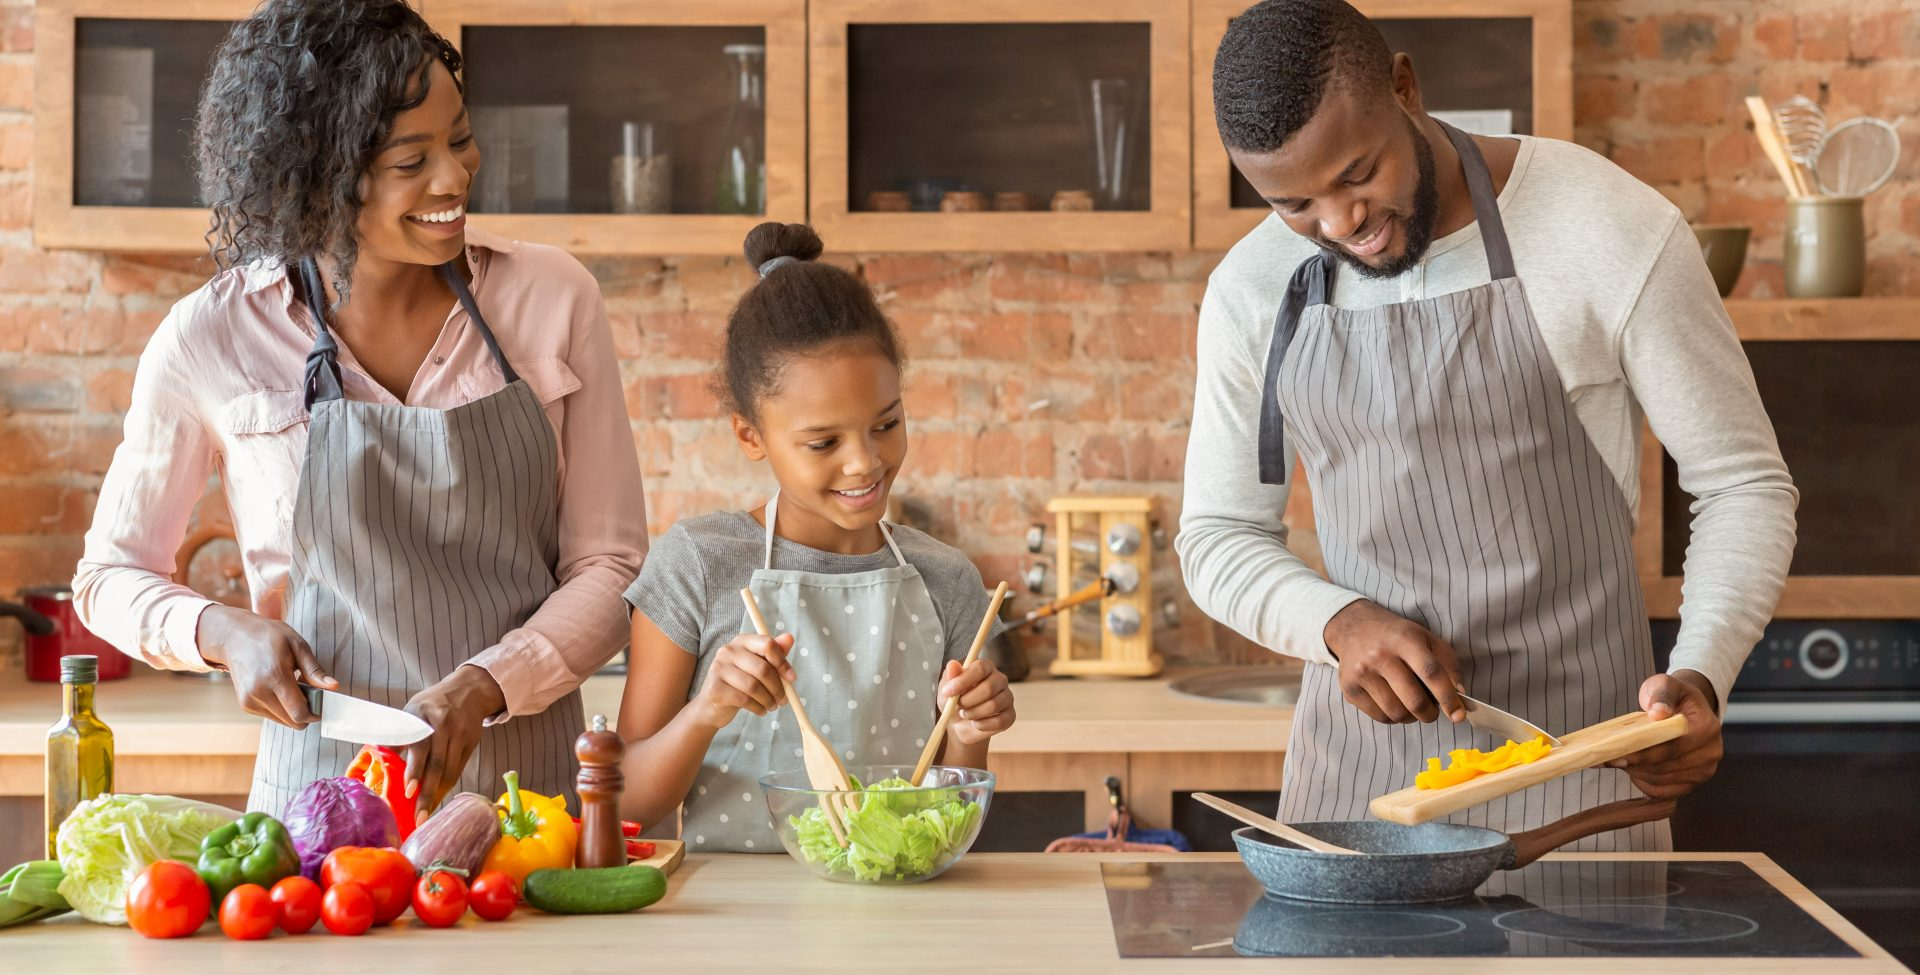 Making healthy choices as a family